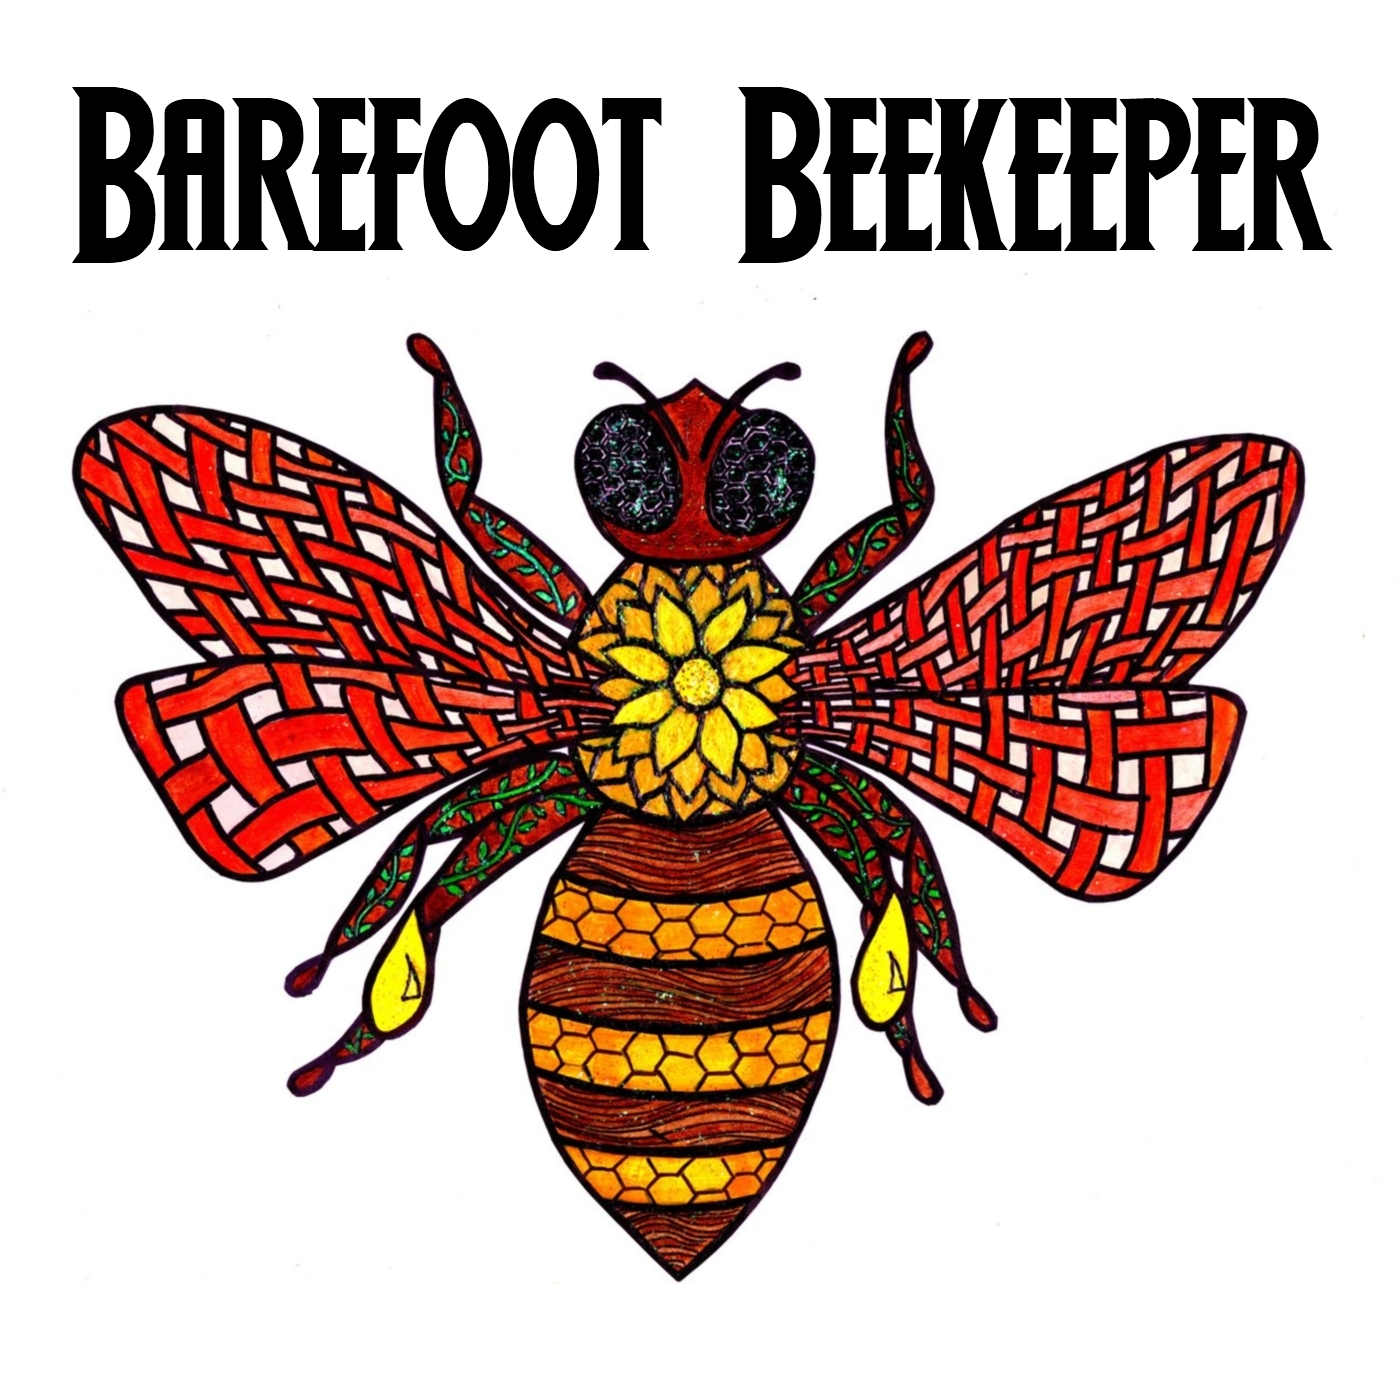 The Barefoot Beekeeper show art